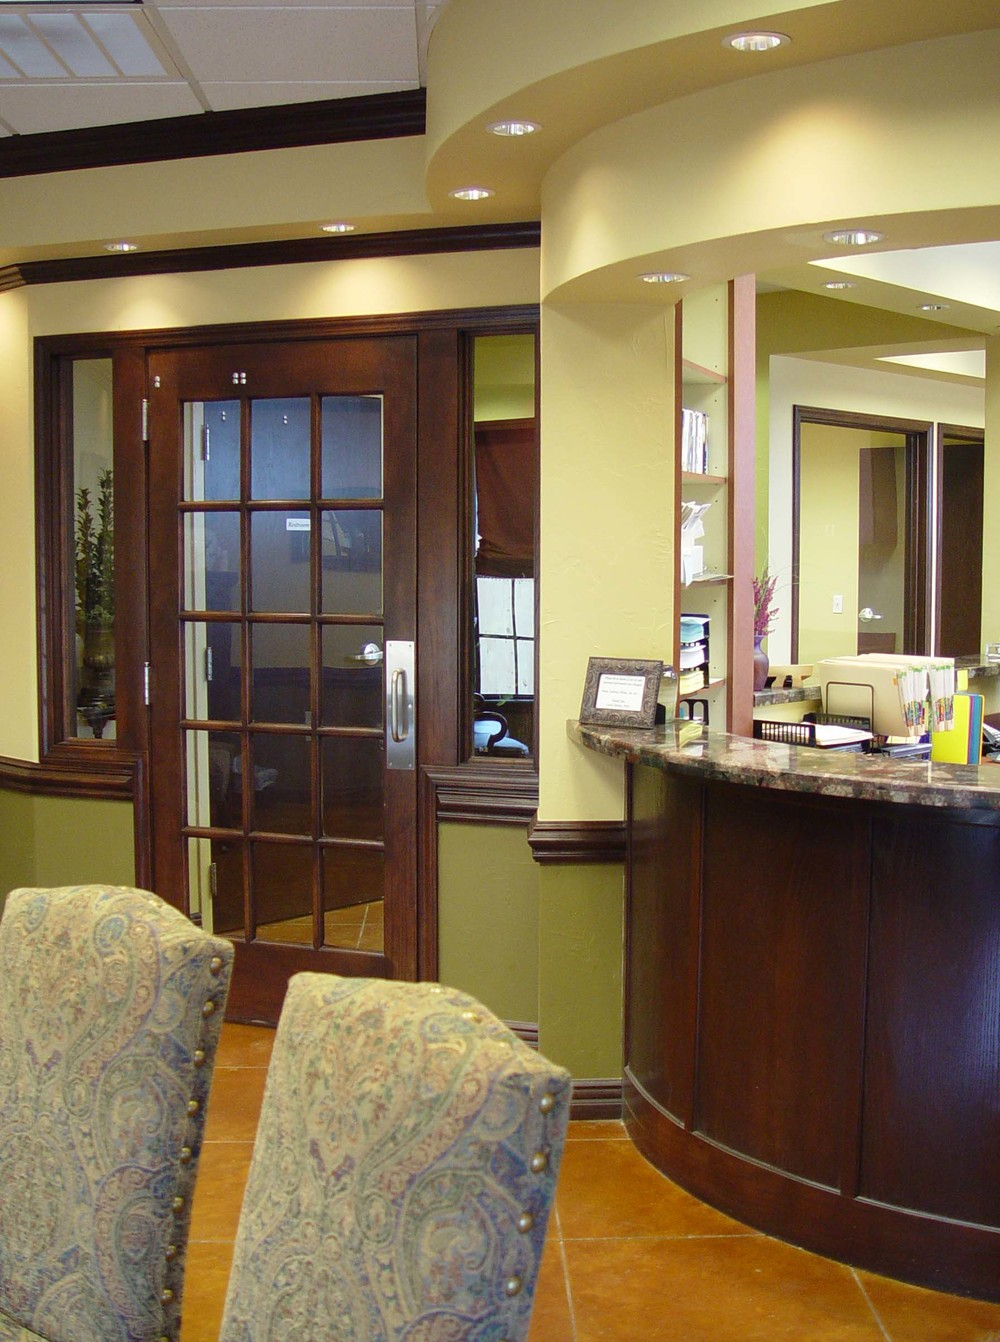 Turney Dental Clinic Lobby 04 copy.jpg